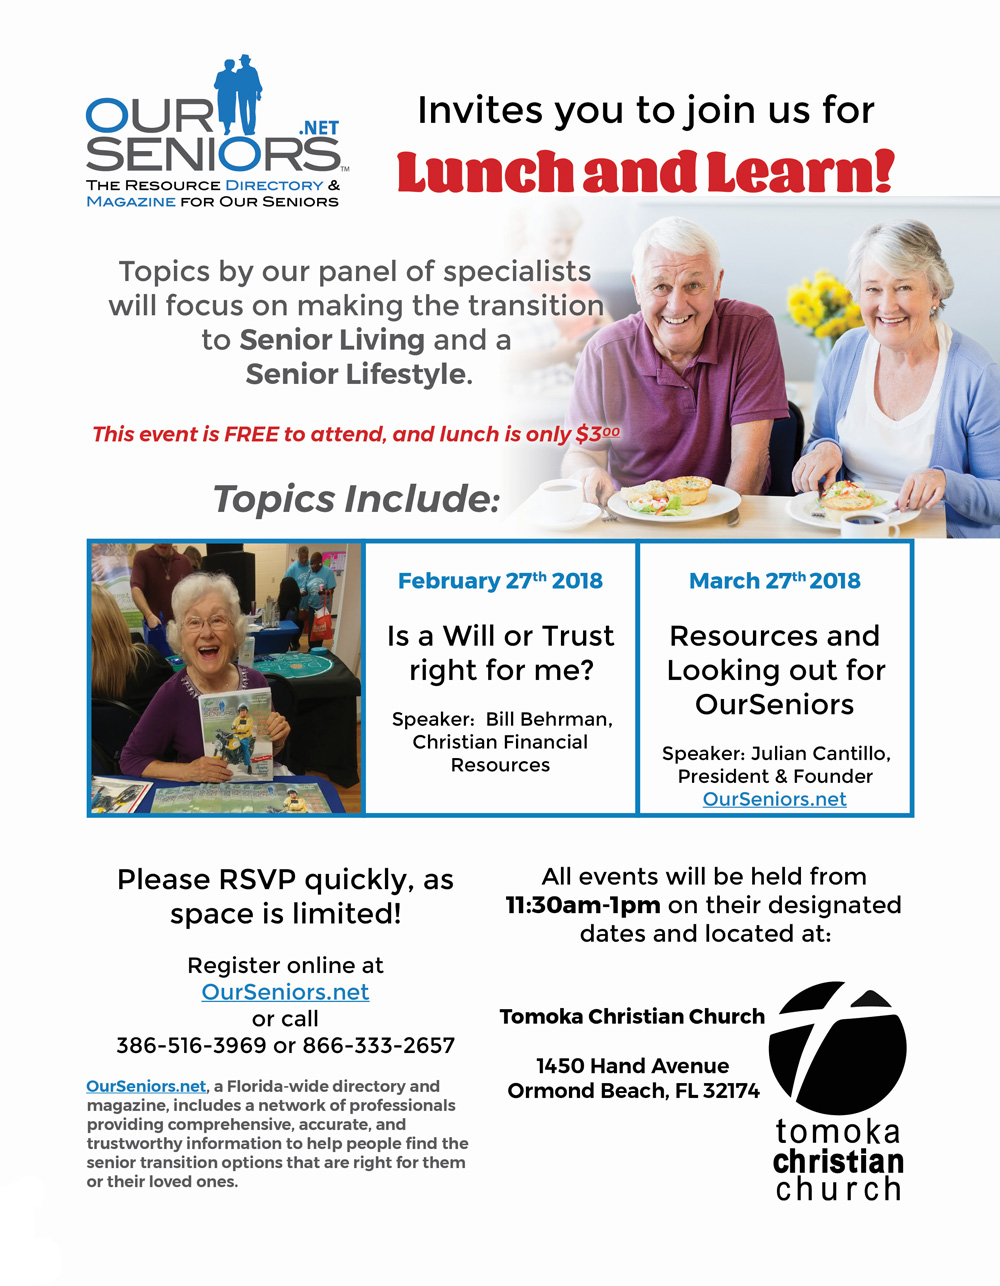 Don't miss out on the next Lunch & Learn – OurSeniors.net